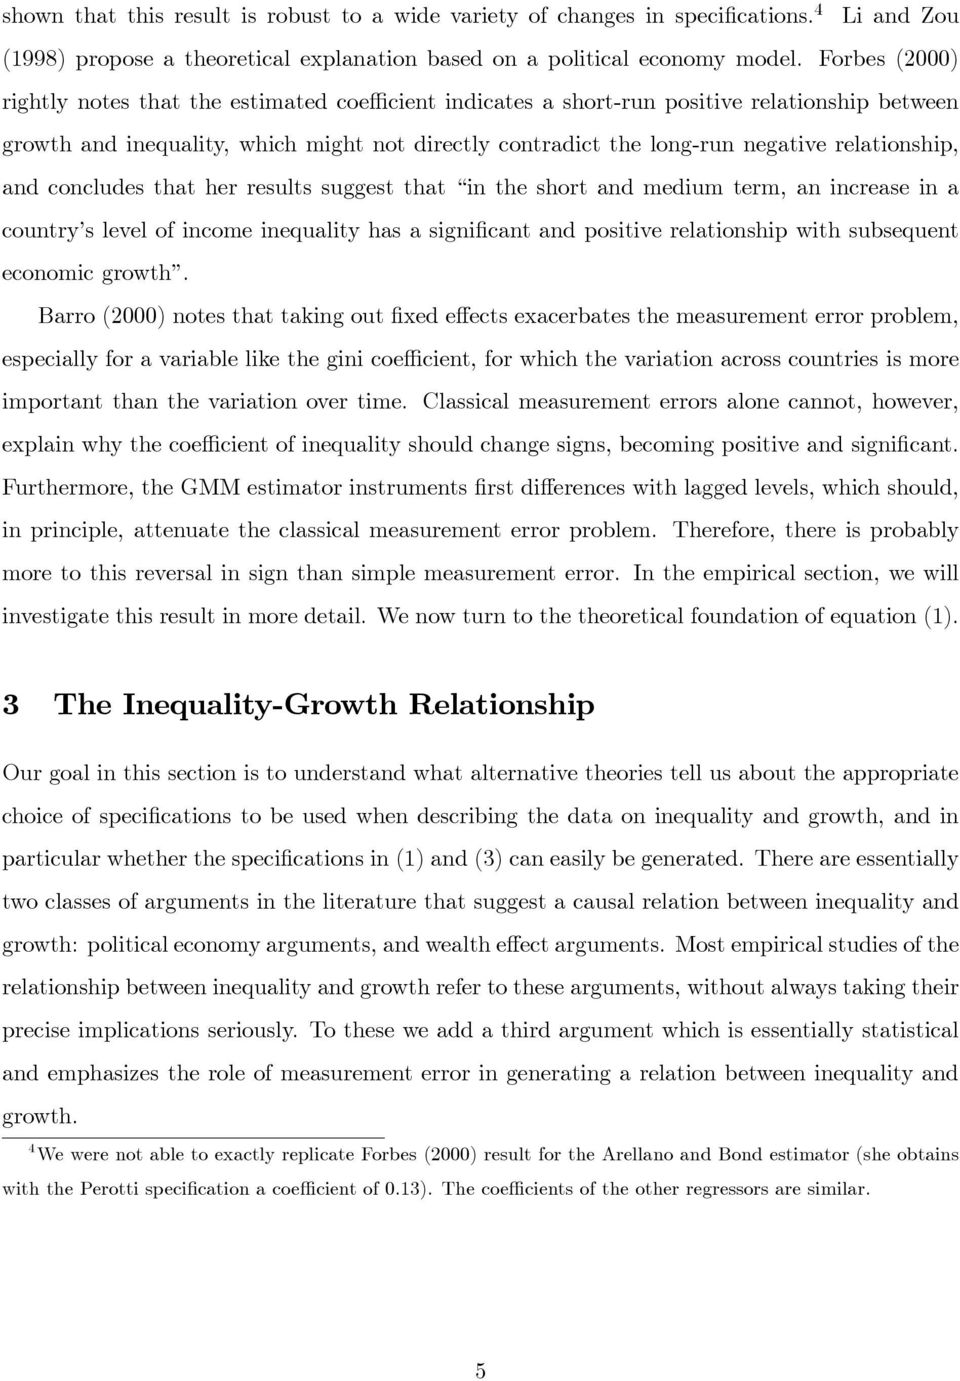 relationship, and concludes that her results suggest that in the short and medium term, an increase in a country s level of income inequality has a significant and positive relationship with